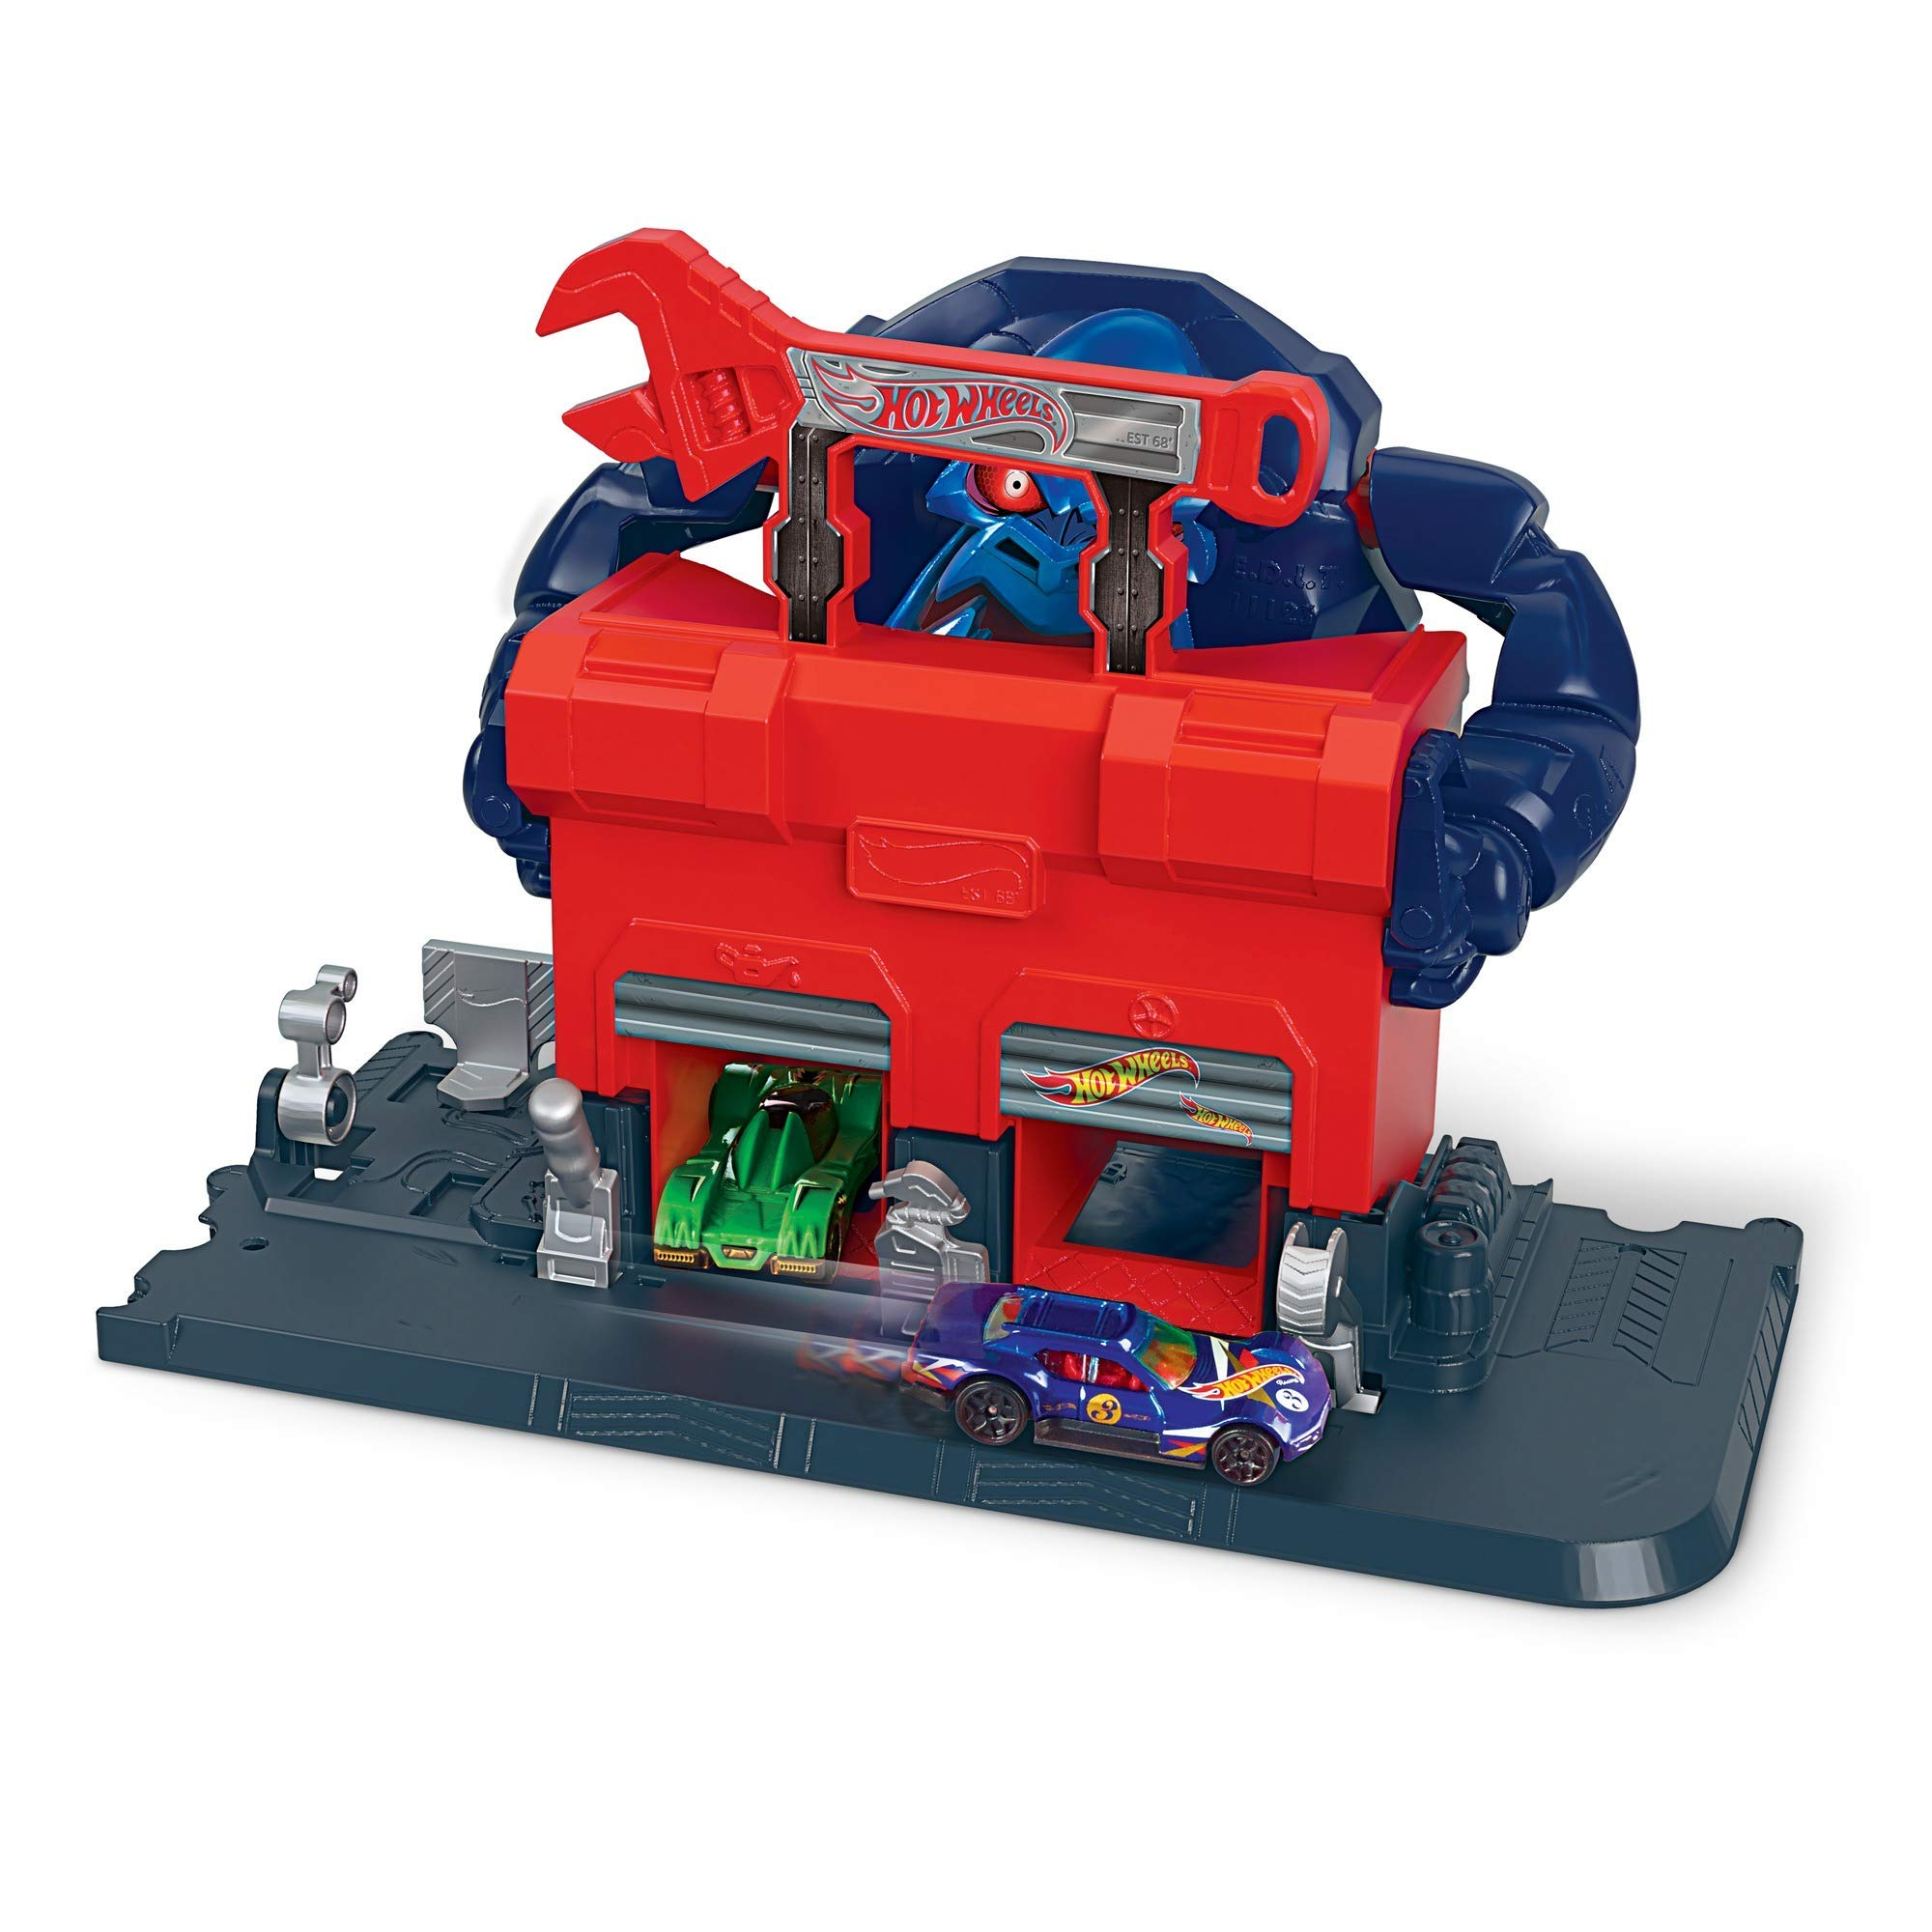 Hot Wheels GJK89 Gorilla Rage Garage Attack Play Set